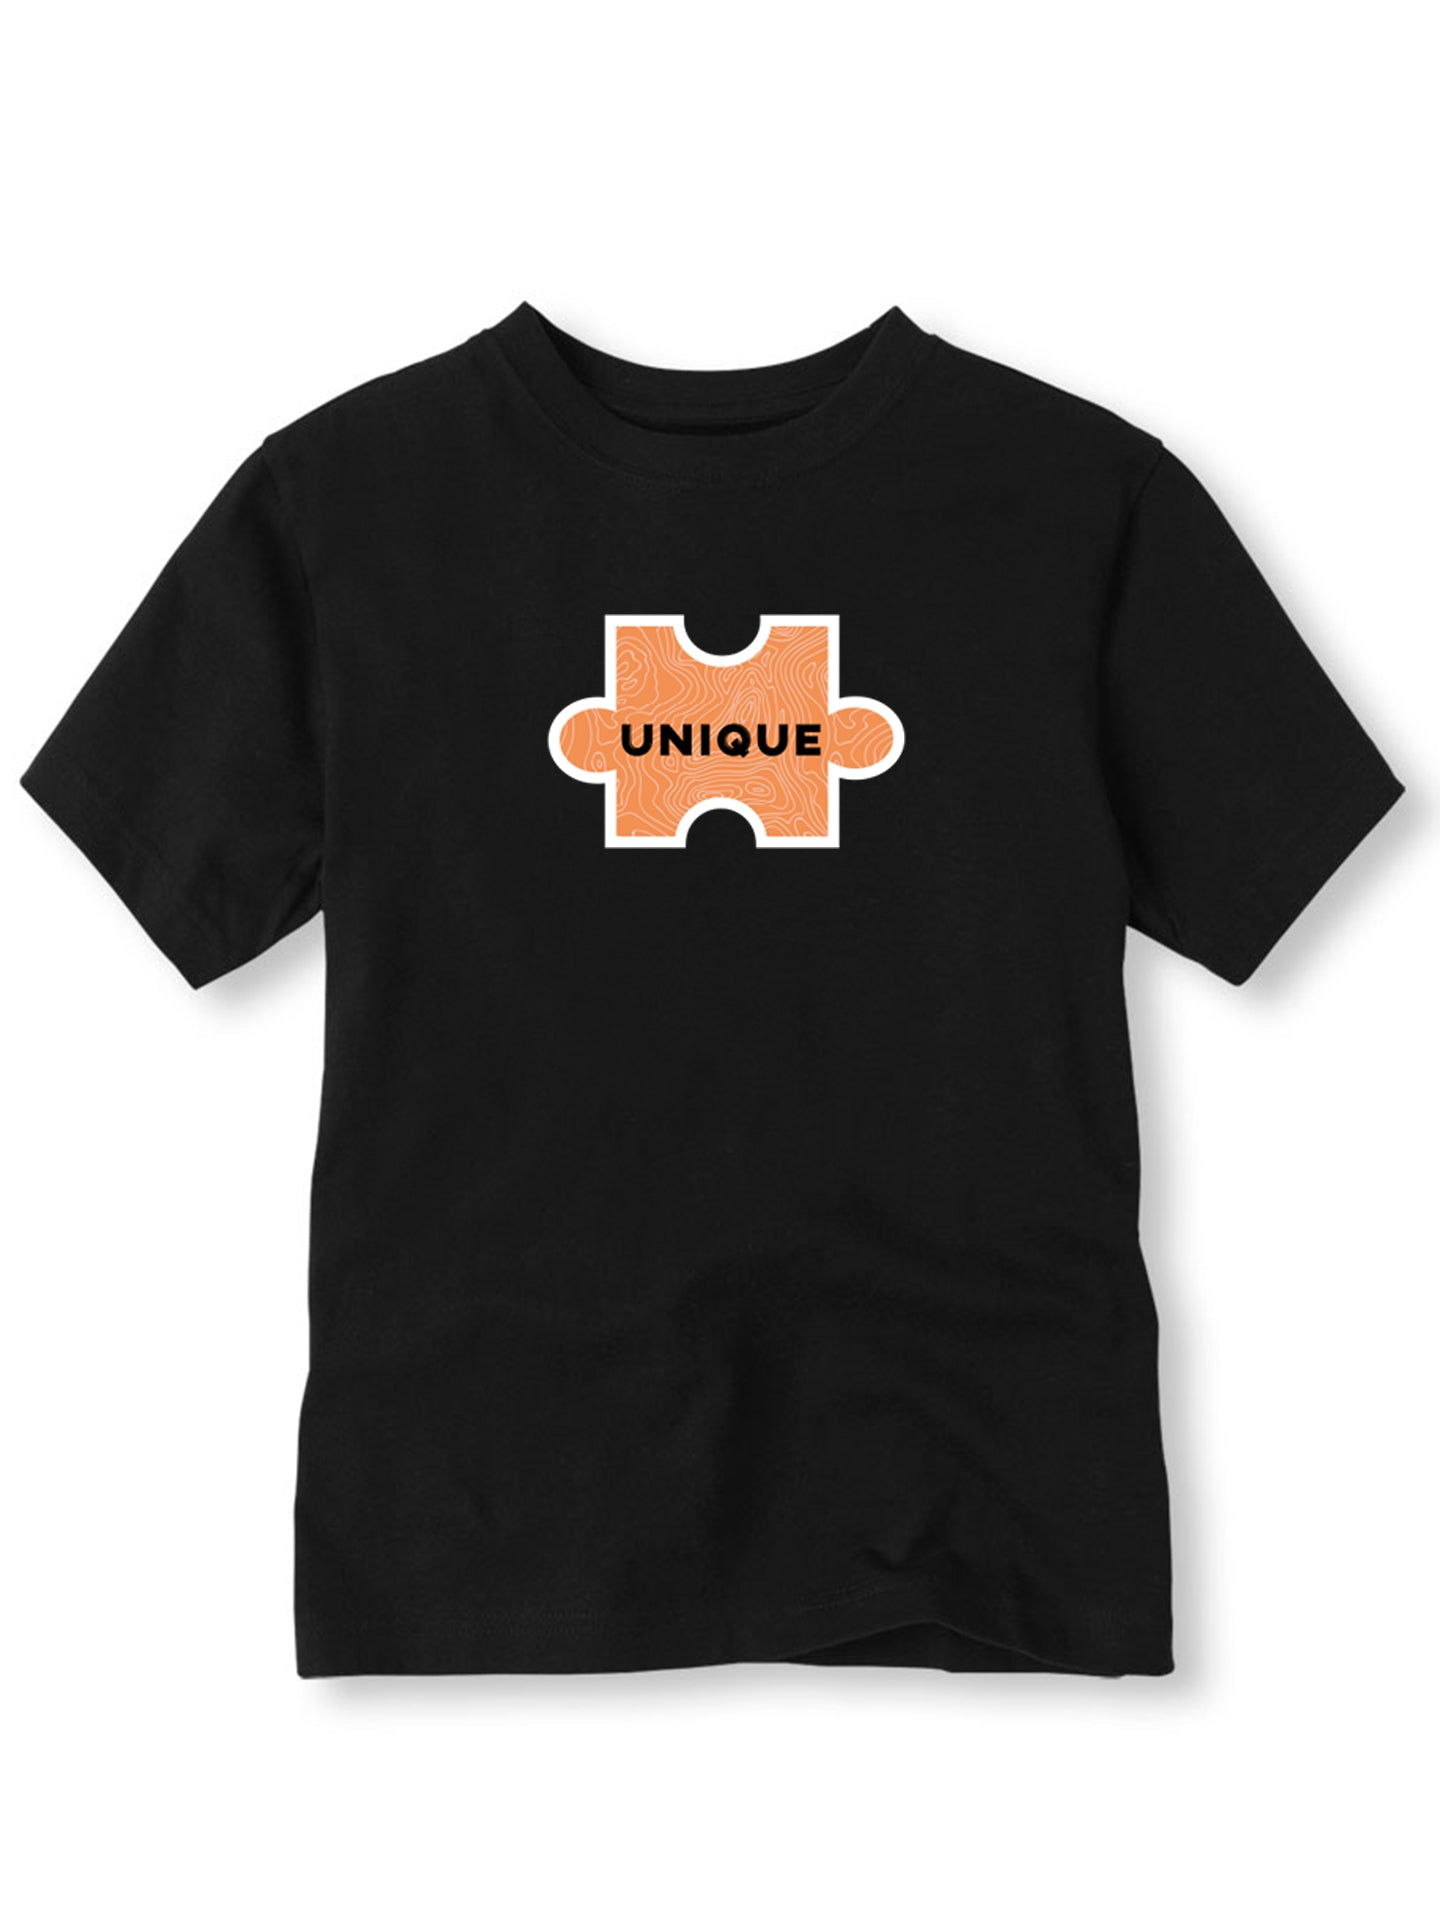 The Power of Words - Organic Kids Tee - Puzzle Piece - UNIQUE